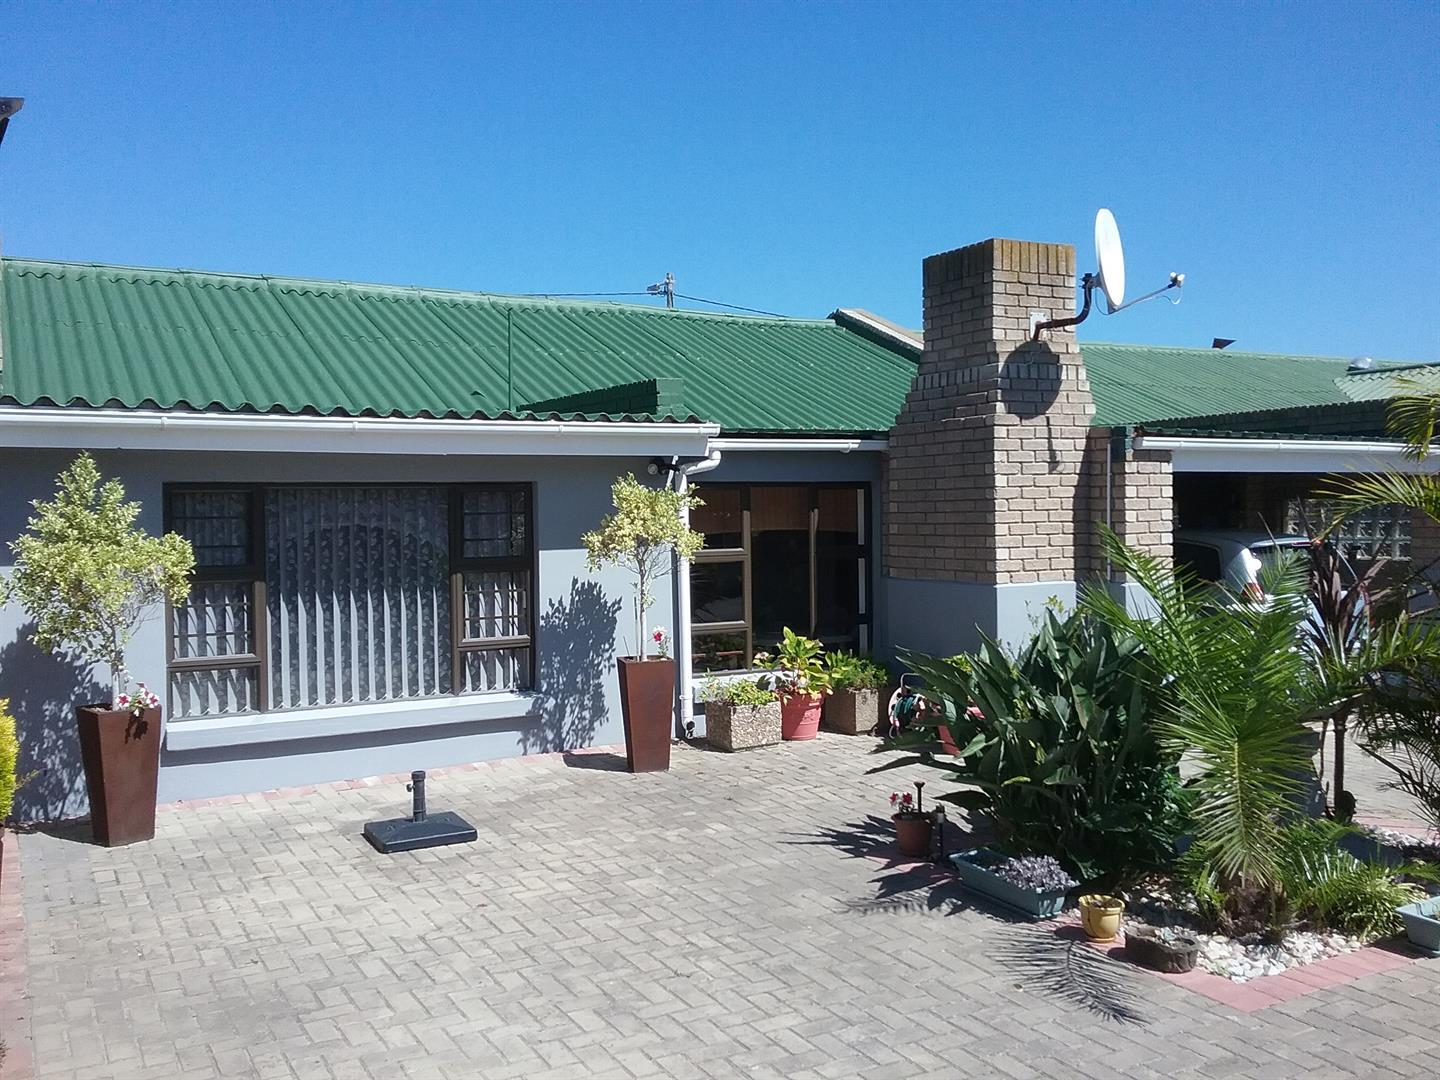 Property & Real Estate Sales - House in Little Brak River, Little Brak River, Mossel Bay, South Africa